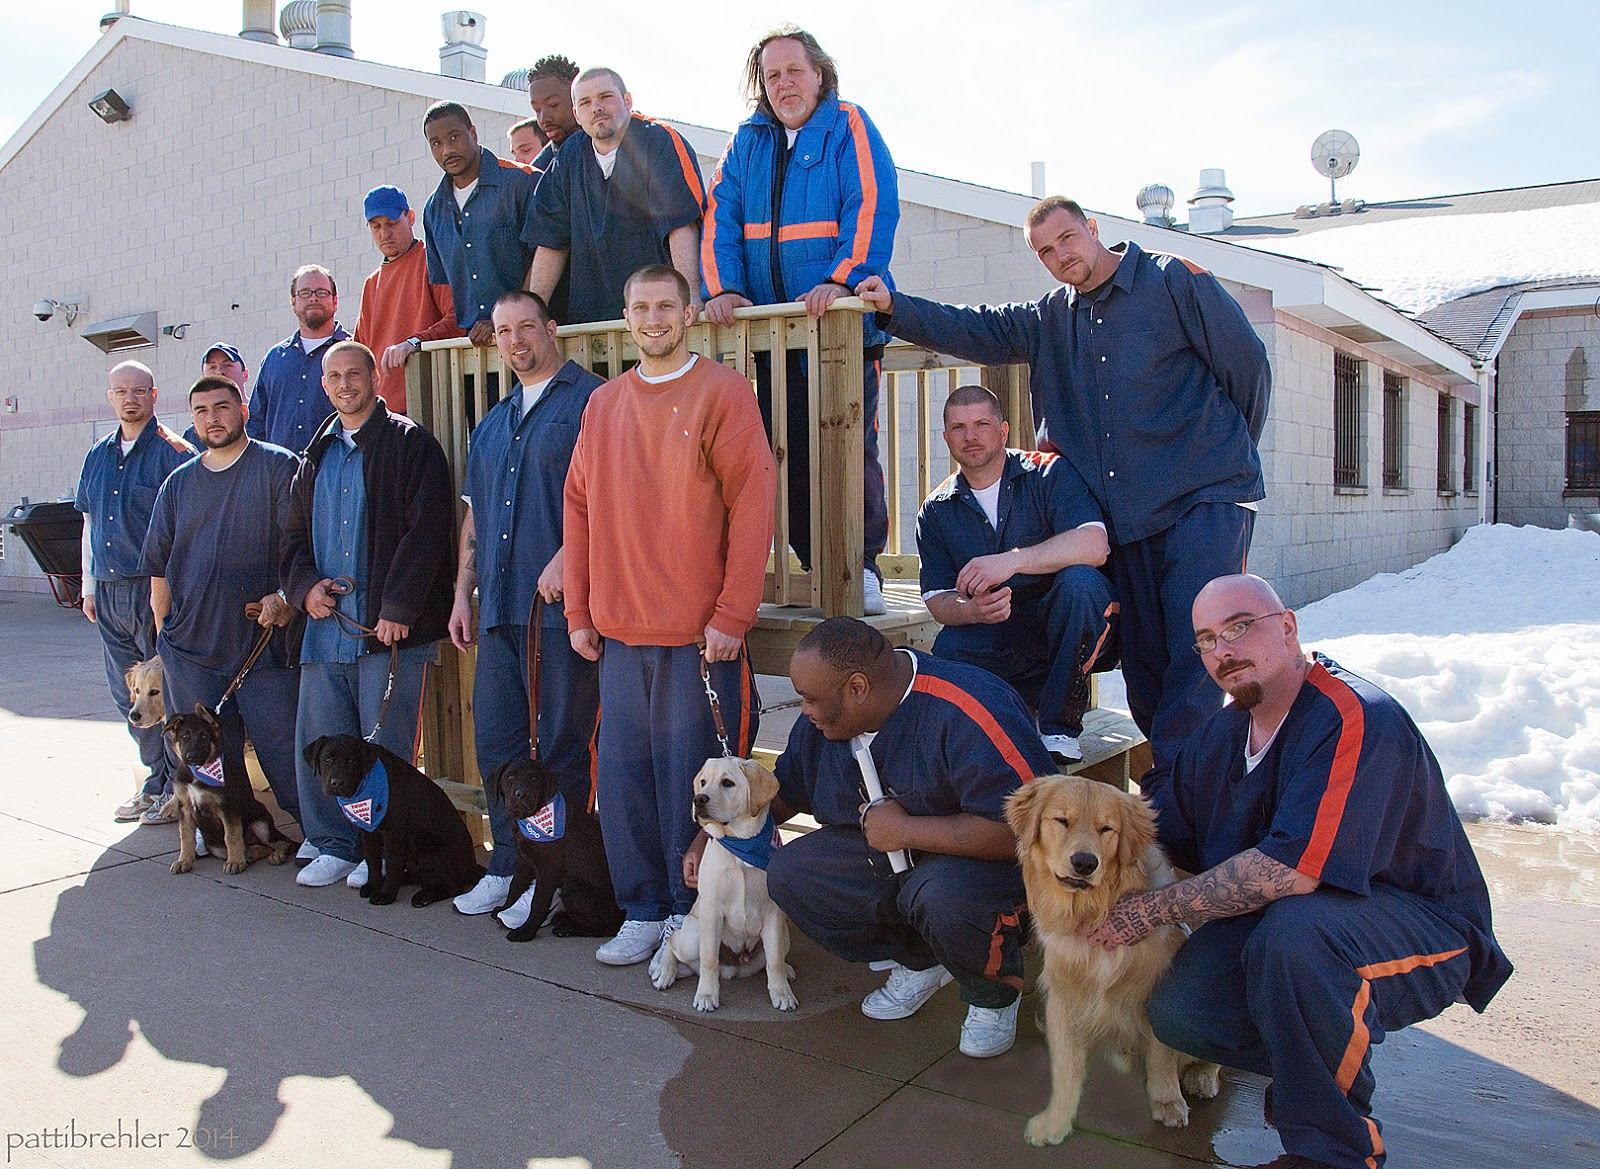 A group of 16 men and six dogs post on a newly built wooden staircase. The stairs are on either side of a platform with railings. It is a bright sunny day in the prison yard, there is still snow on the ground in the background.